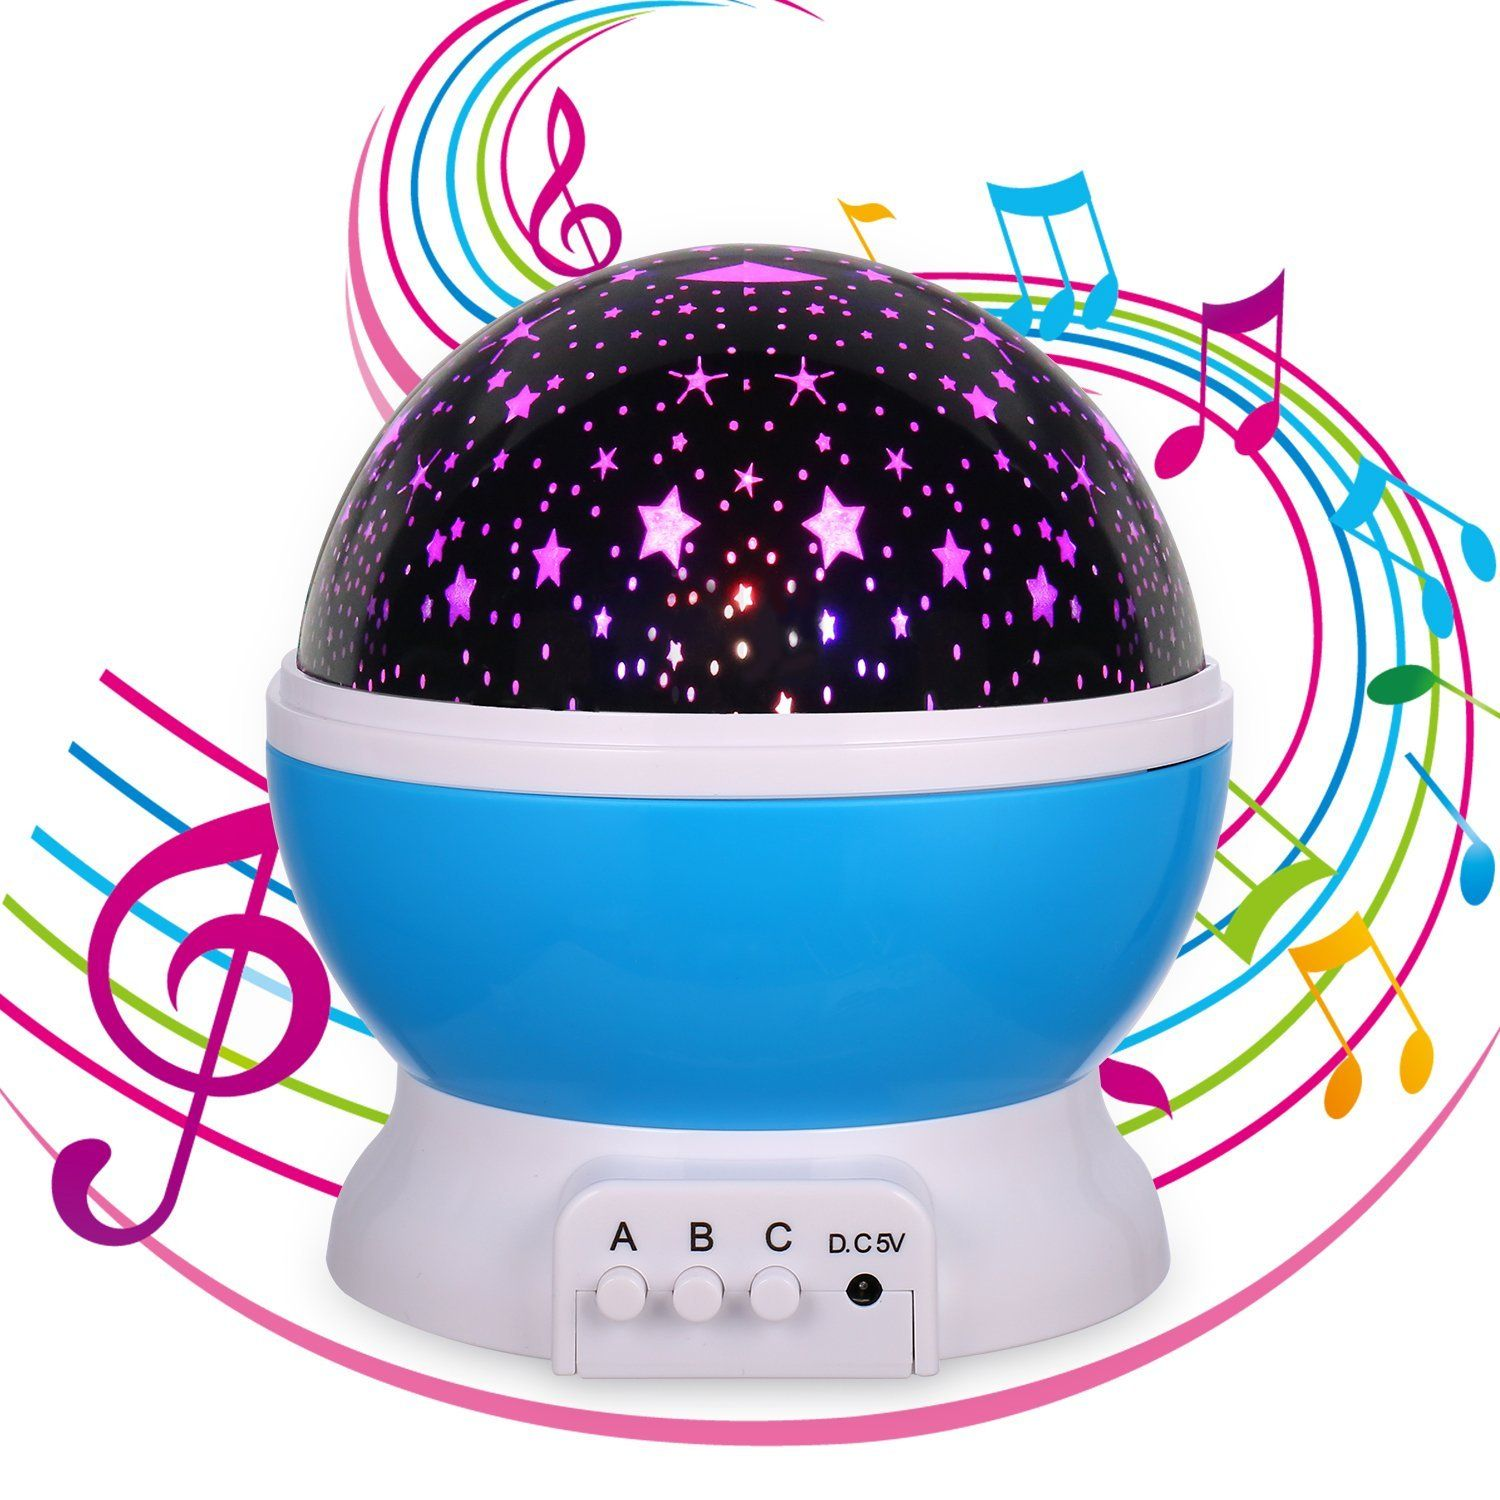 Star Projector Music Toys Lullaby Night Light Gift For Women Or